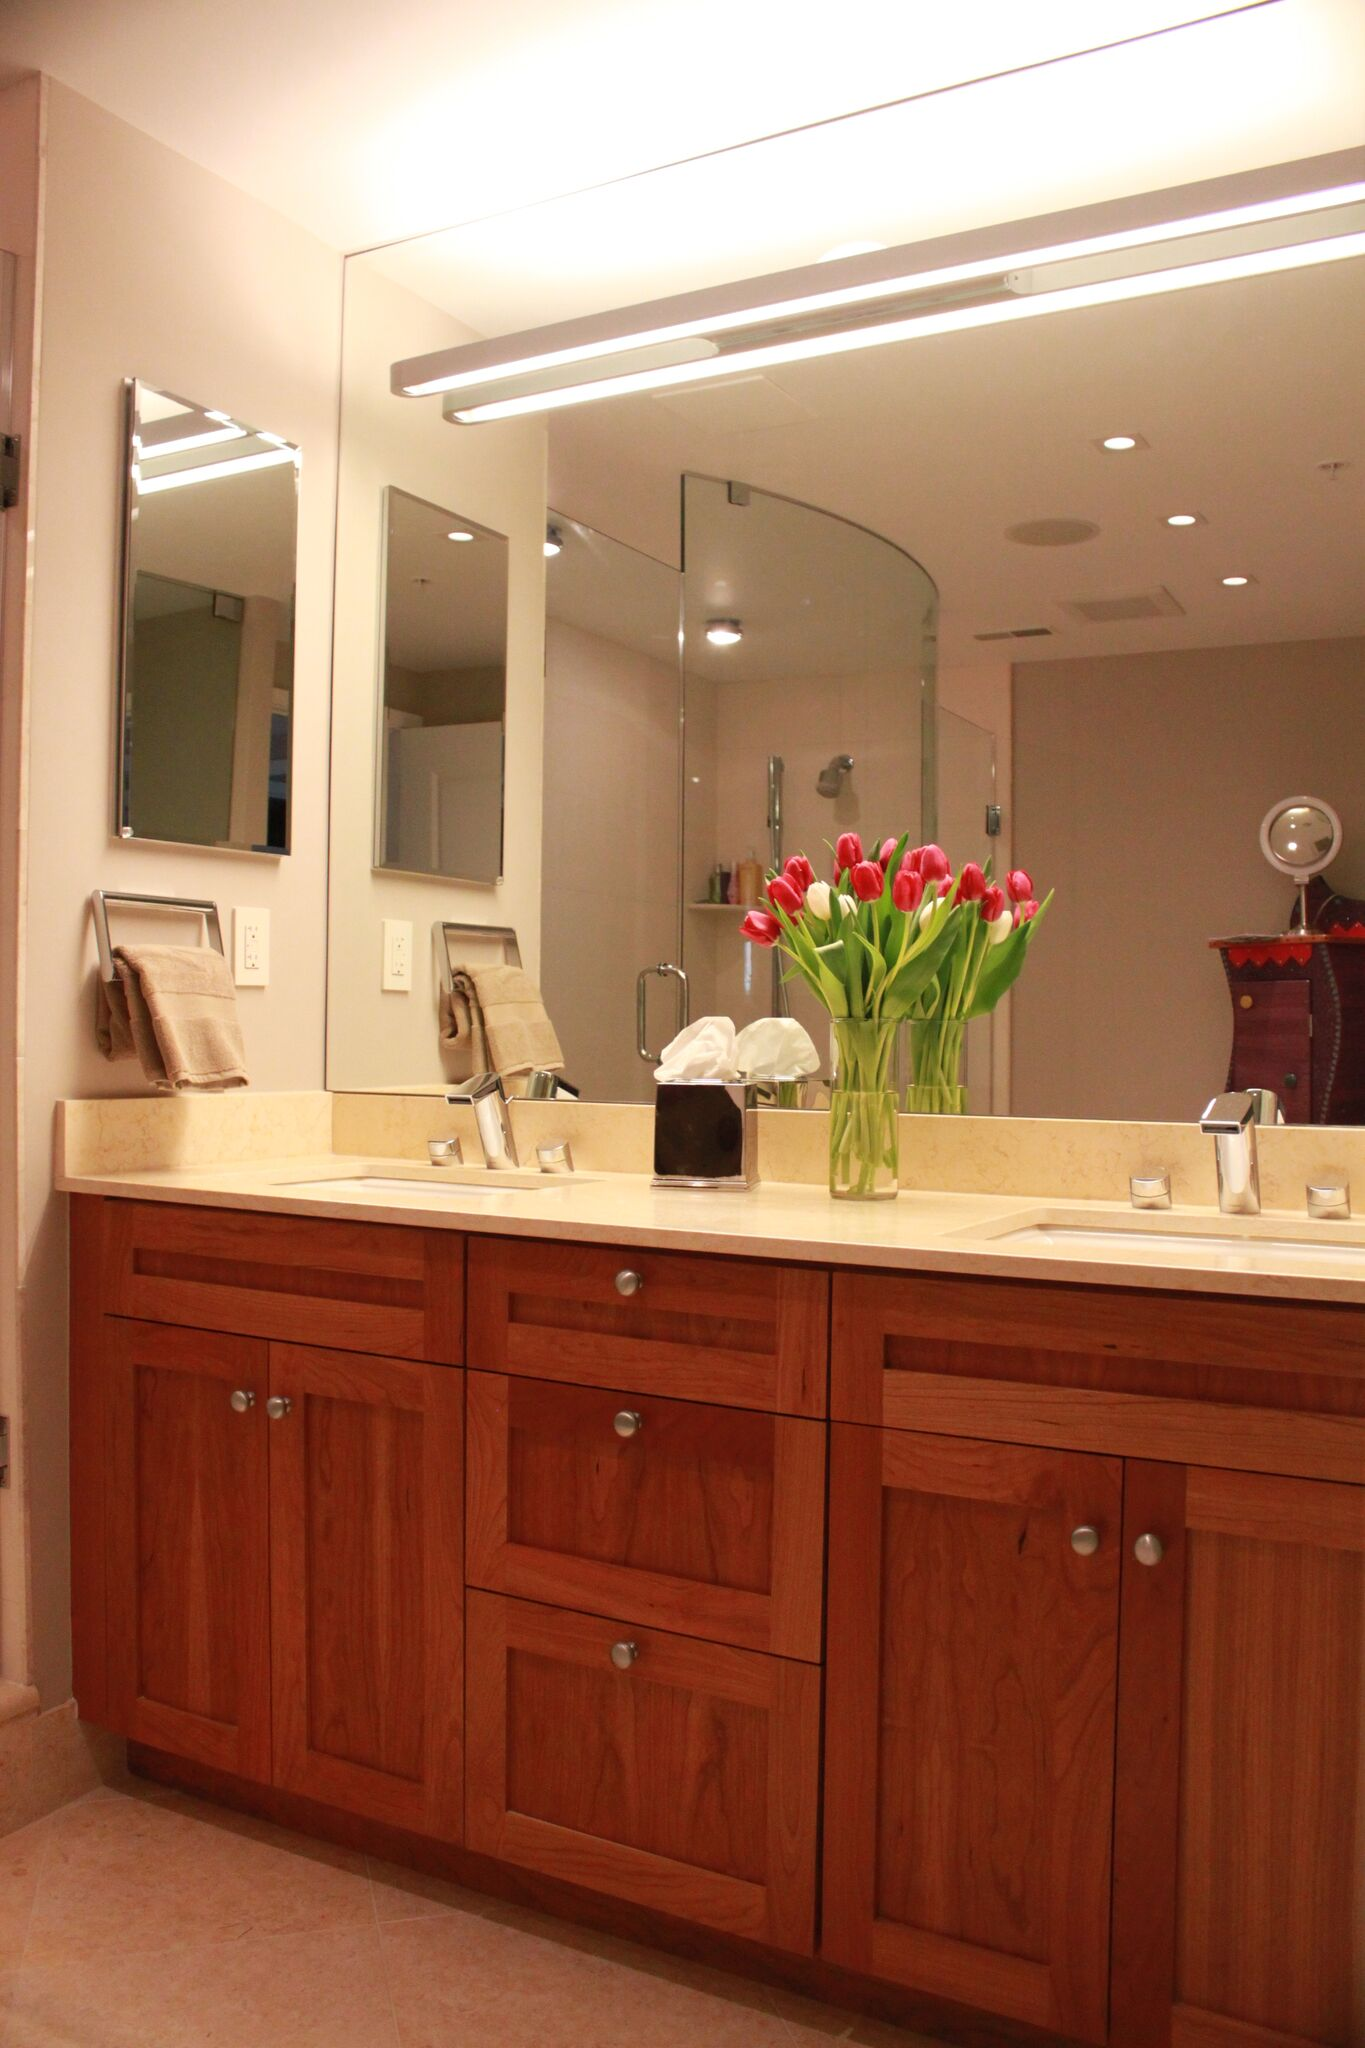 Bathroom Vanity Mirror - Site Const 4-min